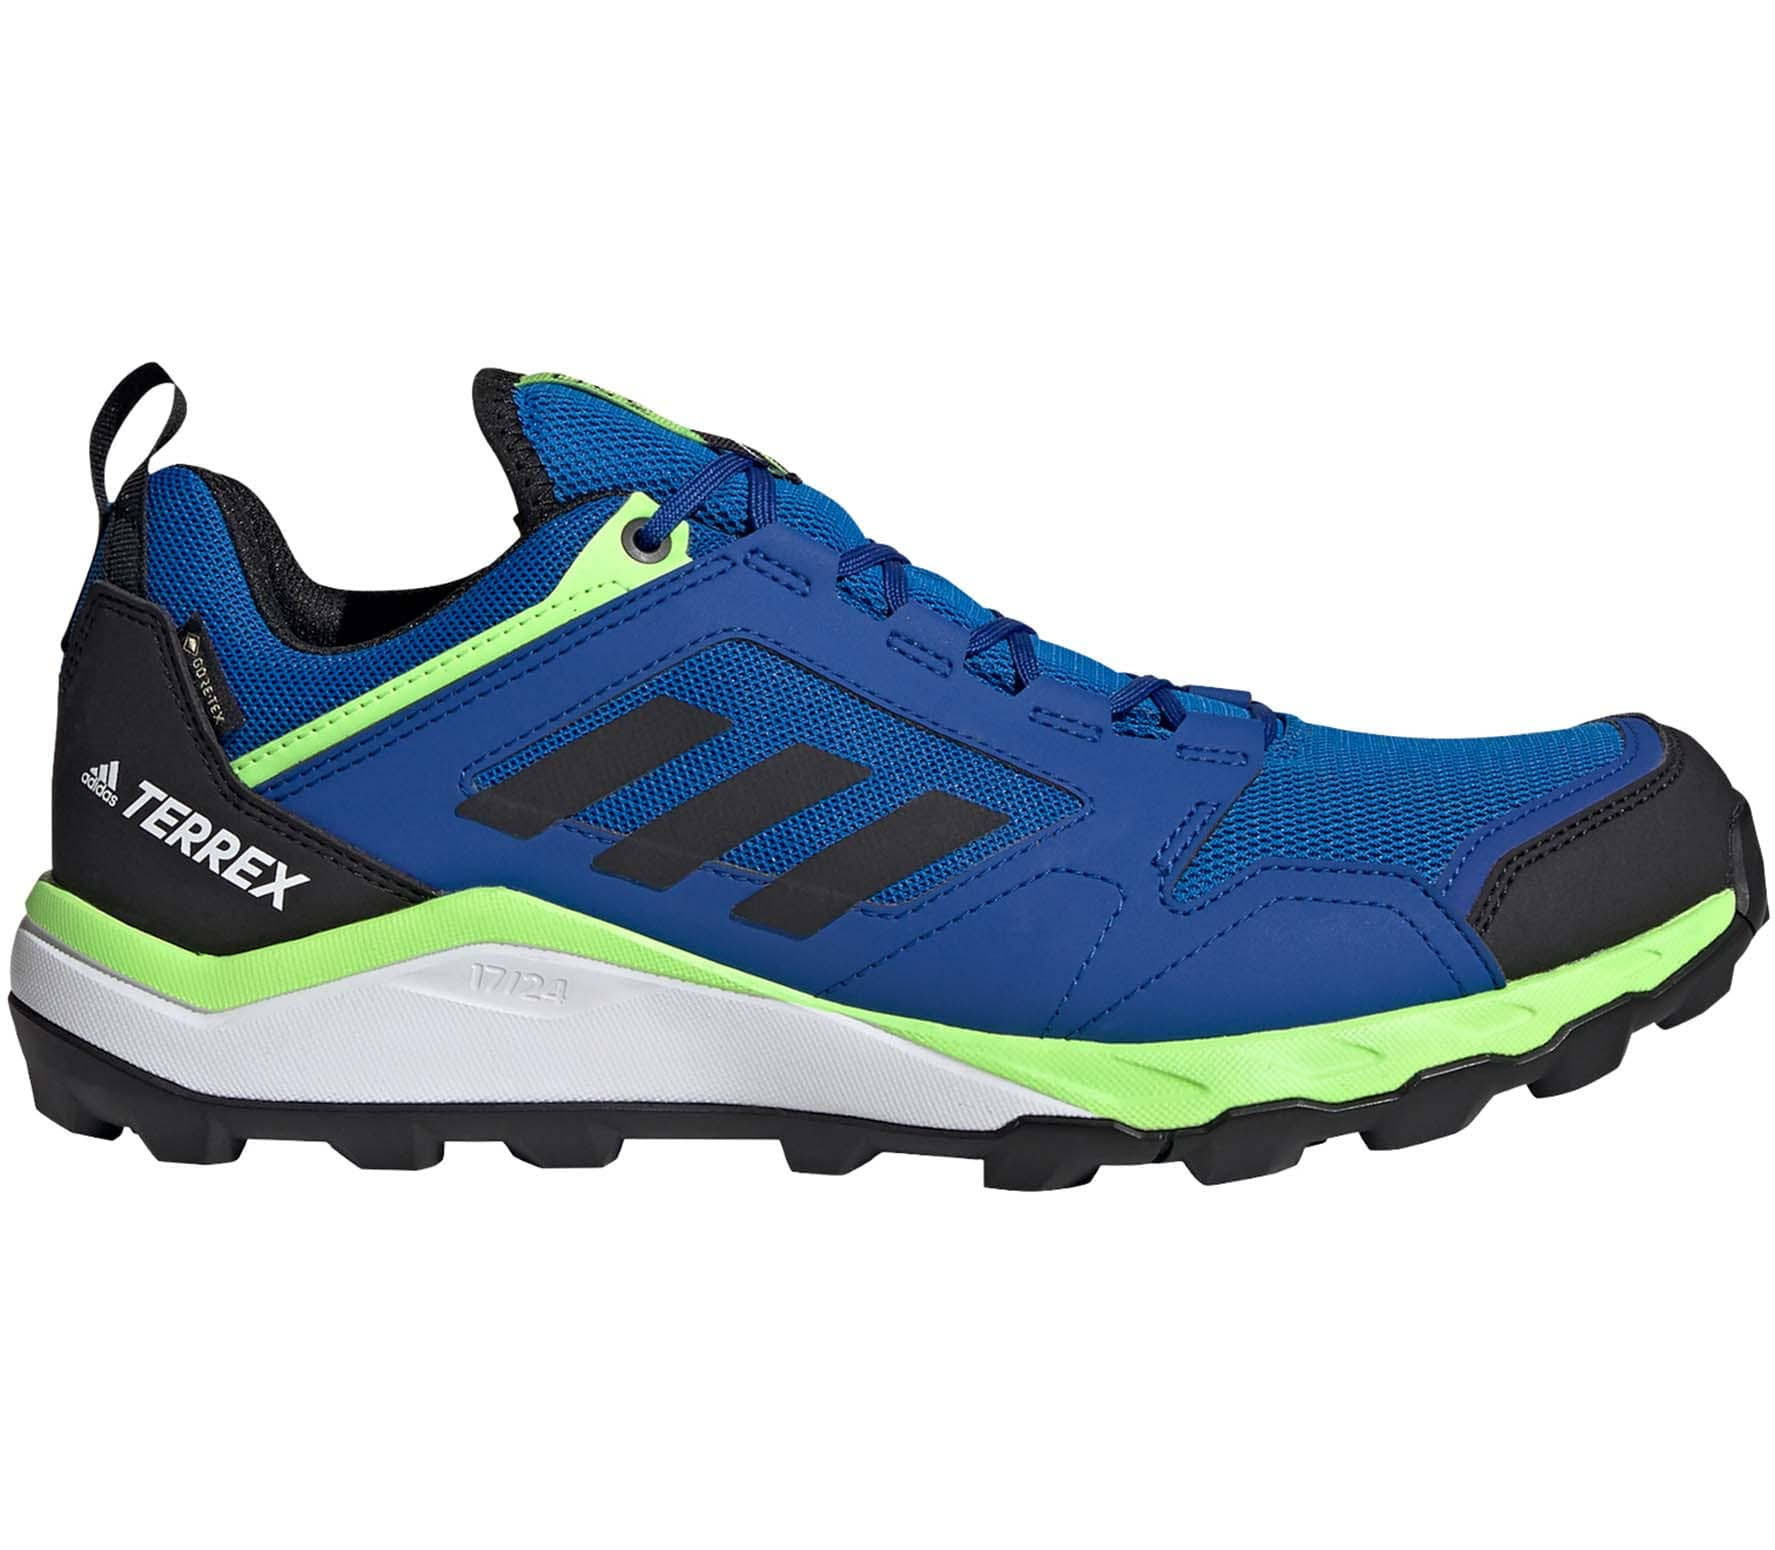 Adidas Terrex Agravic TR Gore Tex Trail Running Shoes - Blue - 12